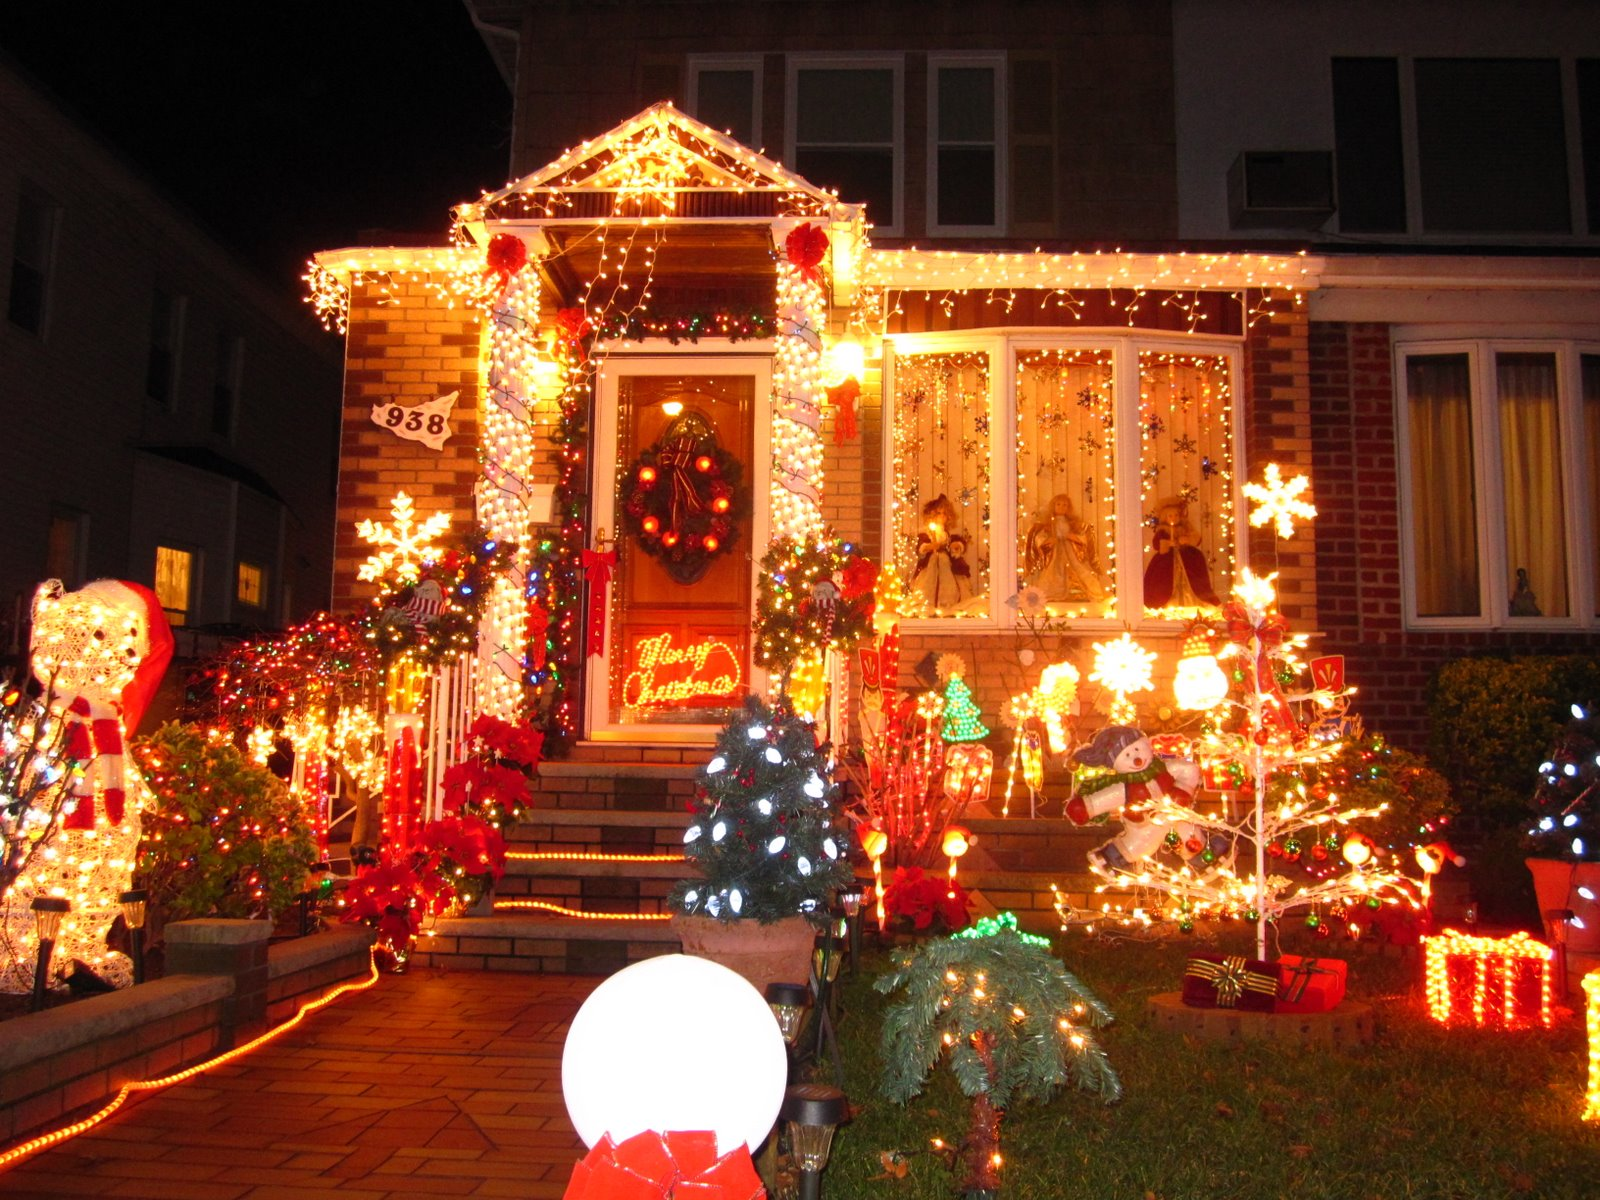 dyker heights christmas lights has been quite a local spectacles i vaguely remember watching it on the local news many years ago and always wanted to - Christmas Lights In Brooklyn